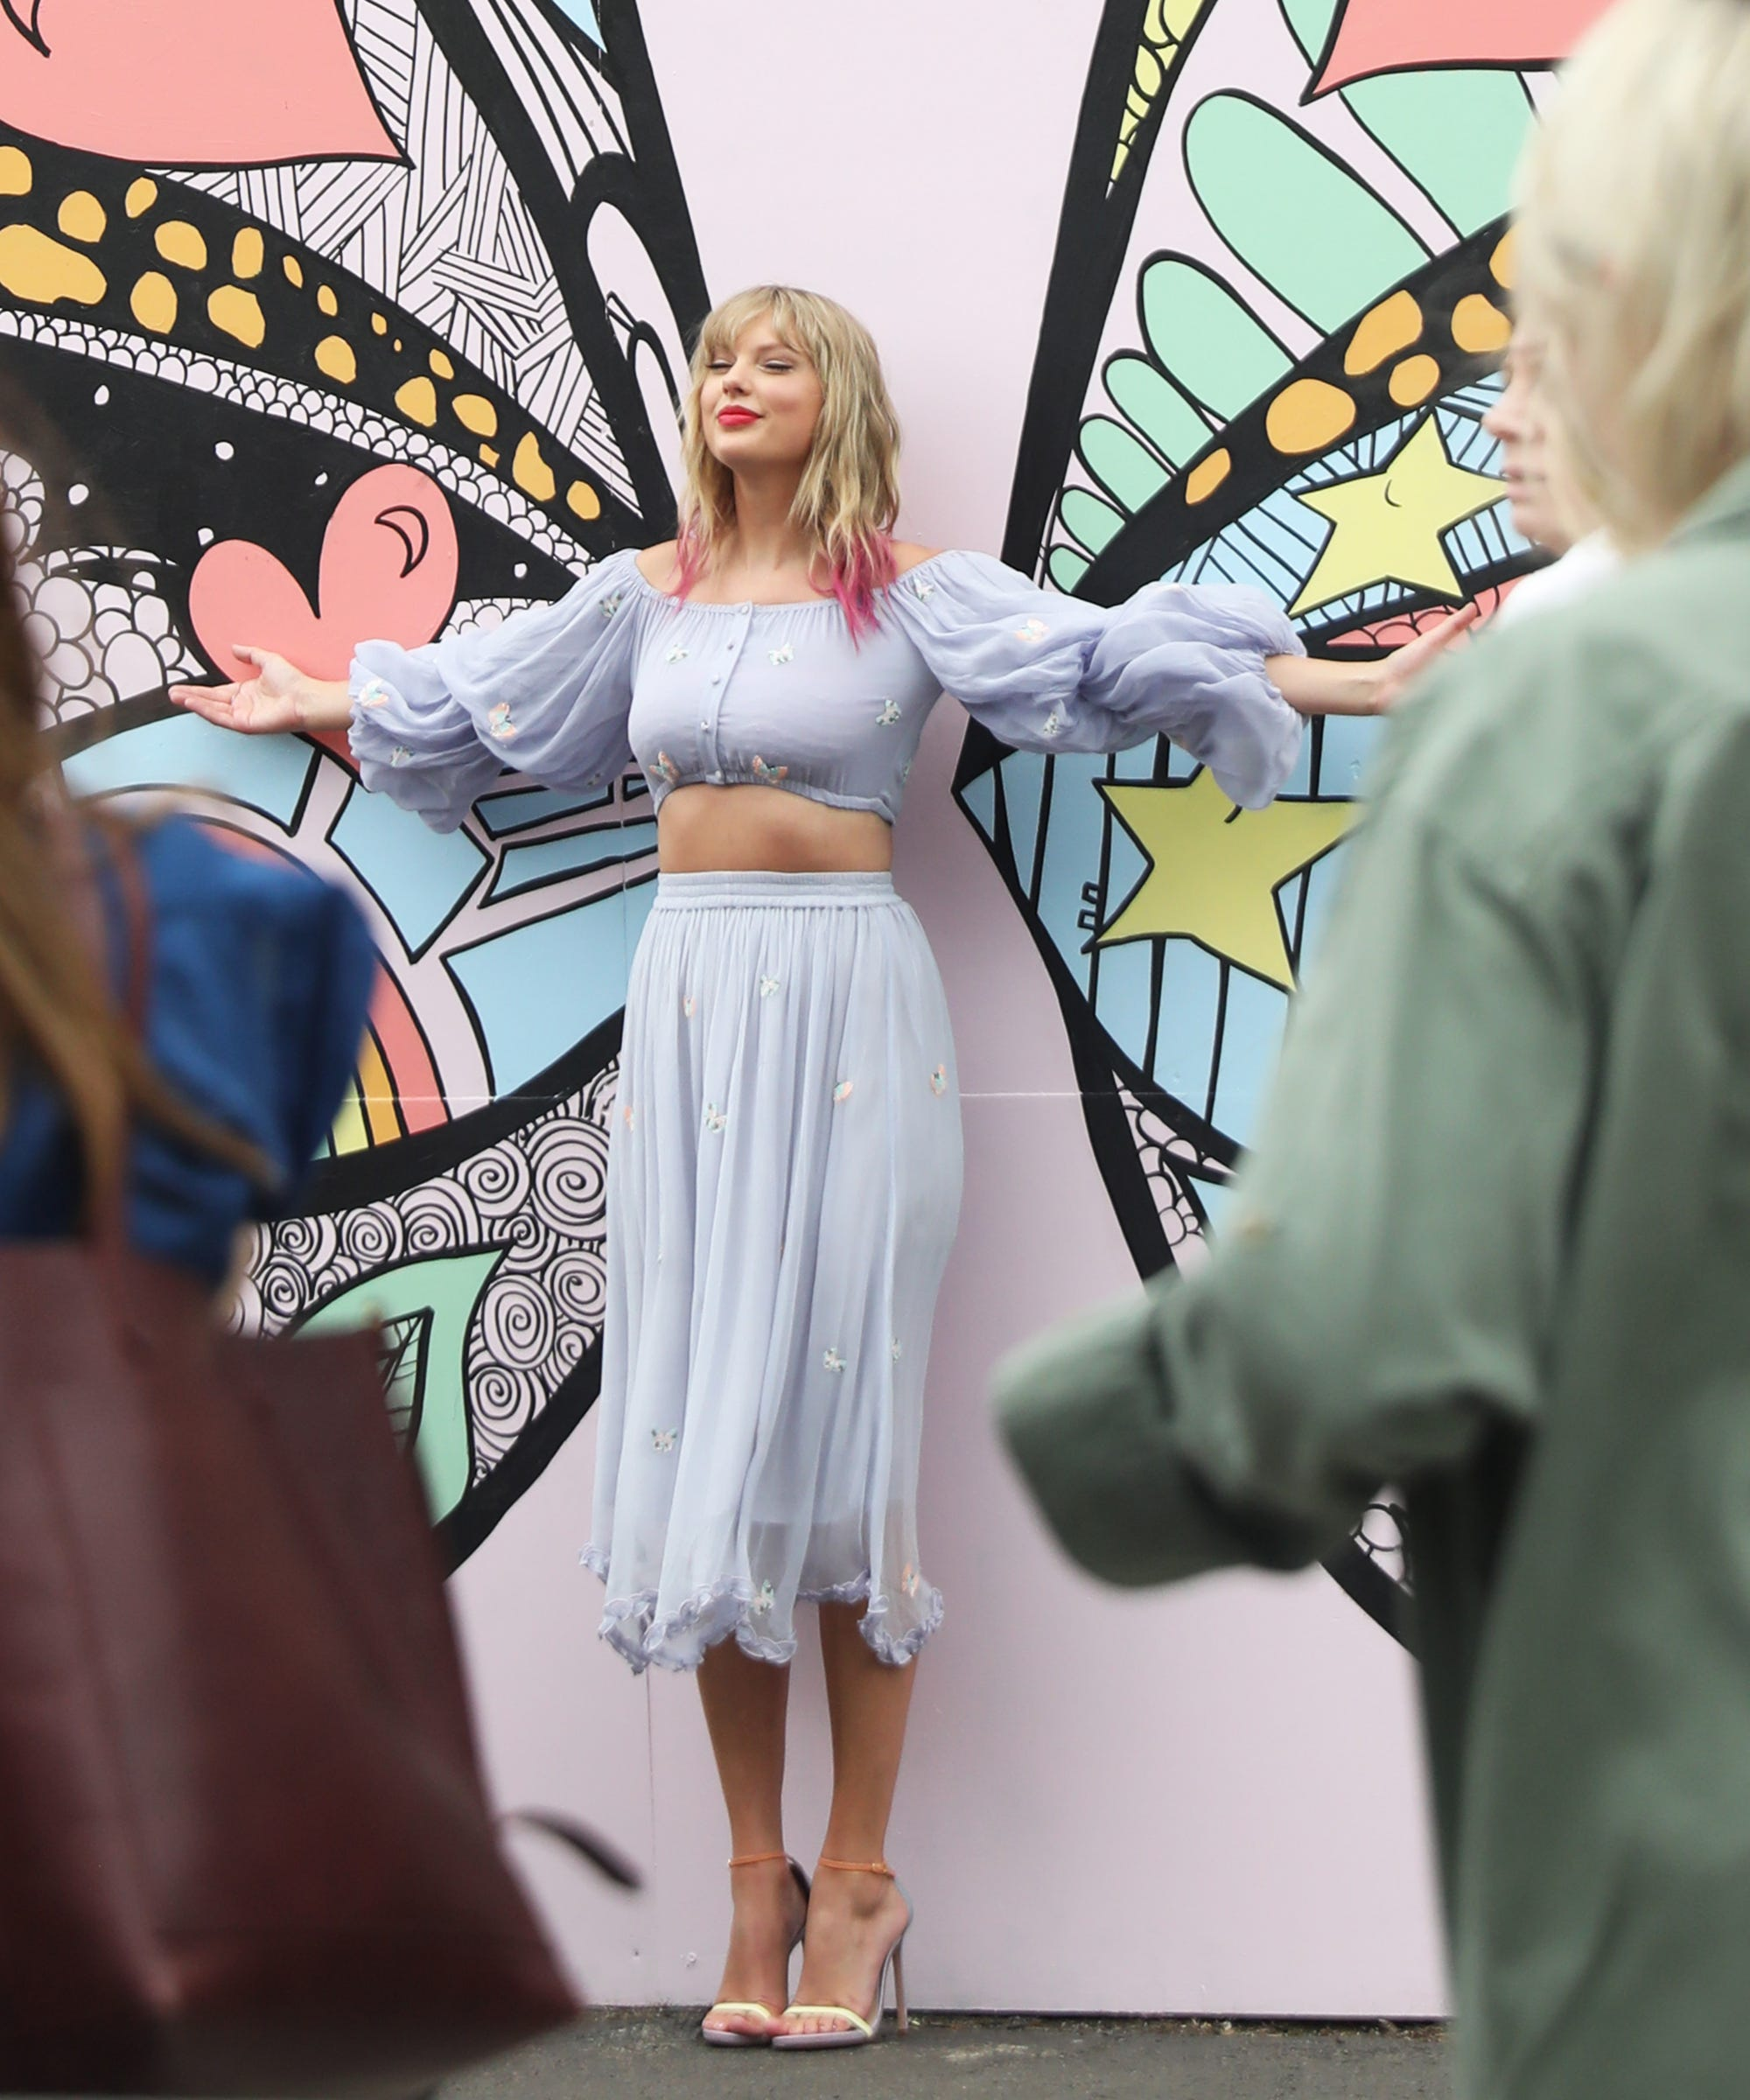 The Artist Behind The Butterfly Mural Had No Idea It Was For Taylor Swift